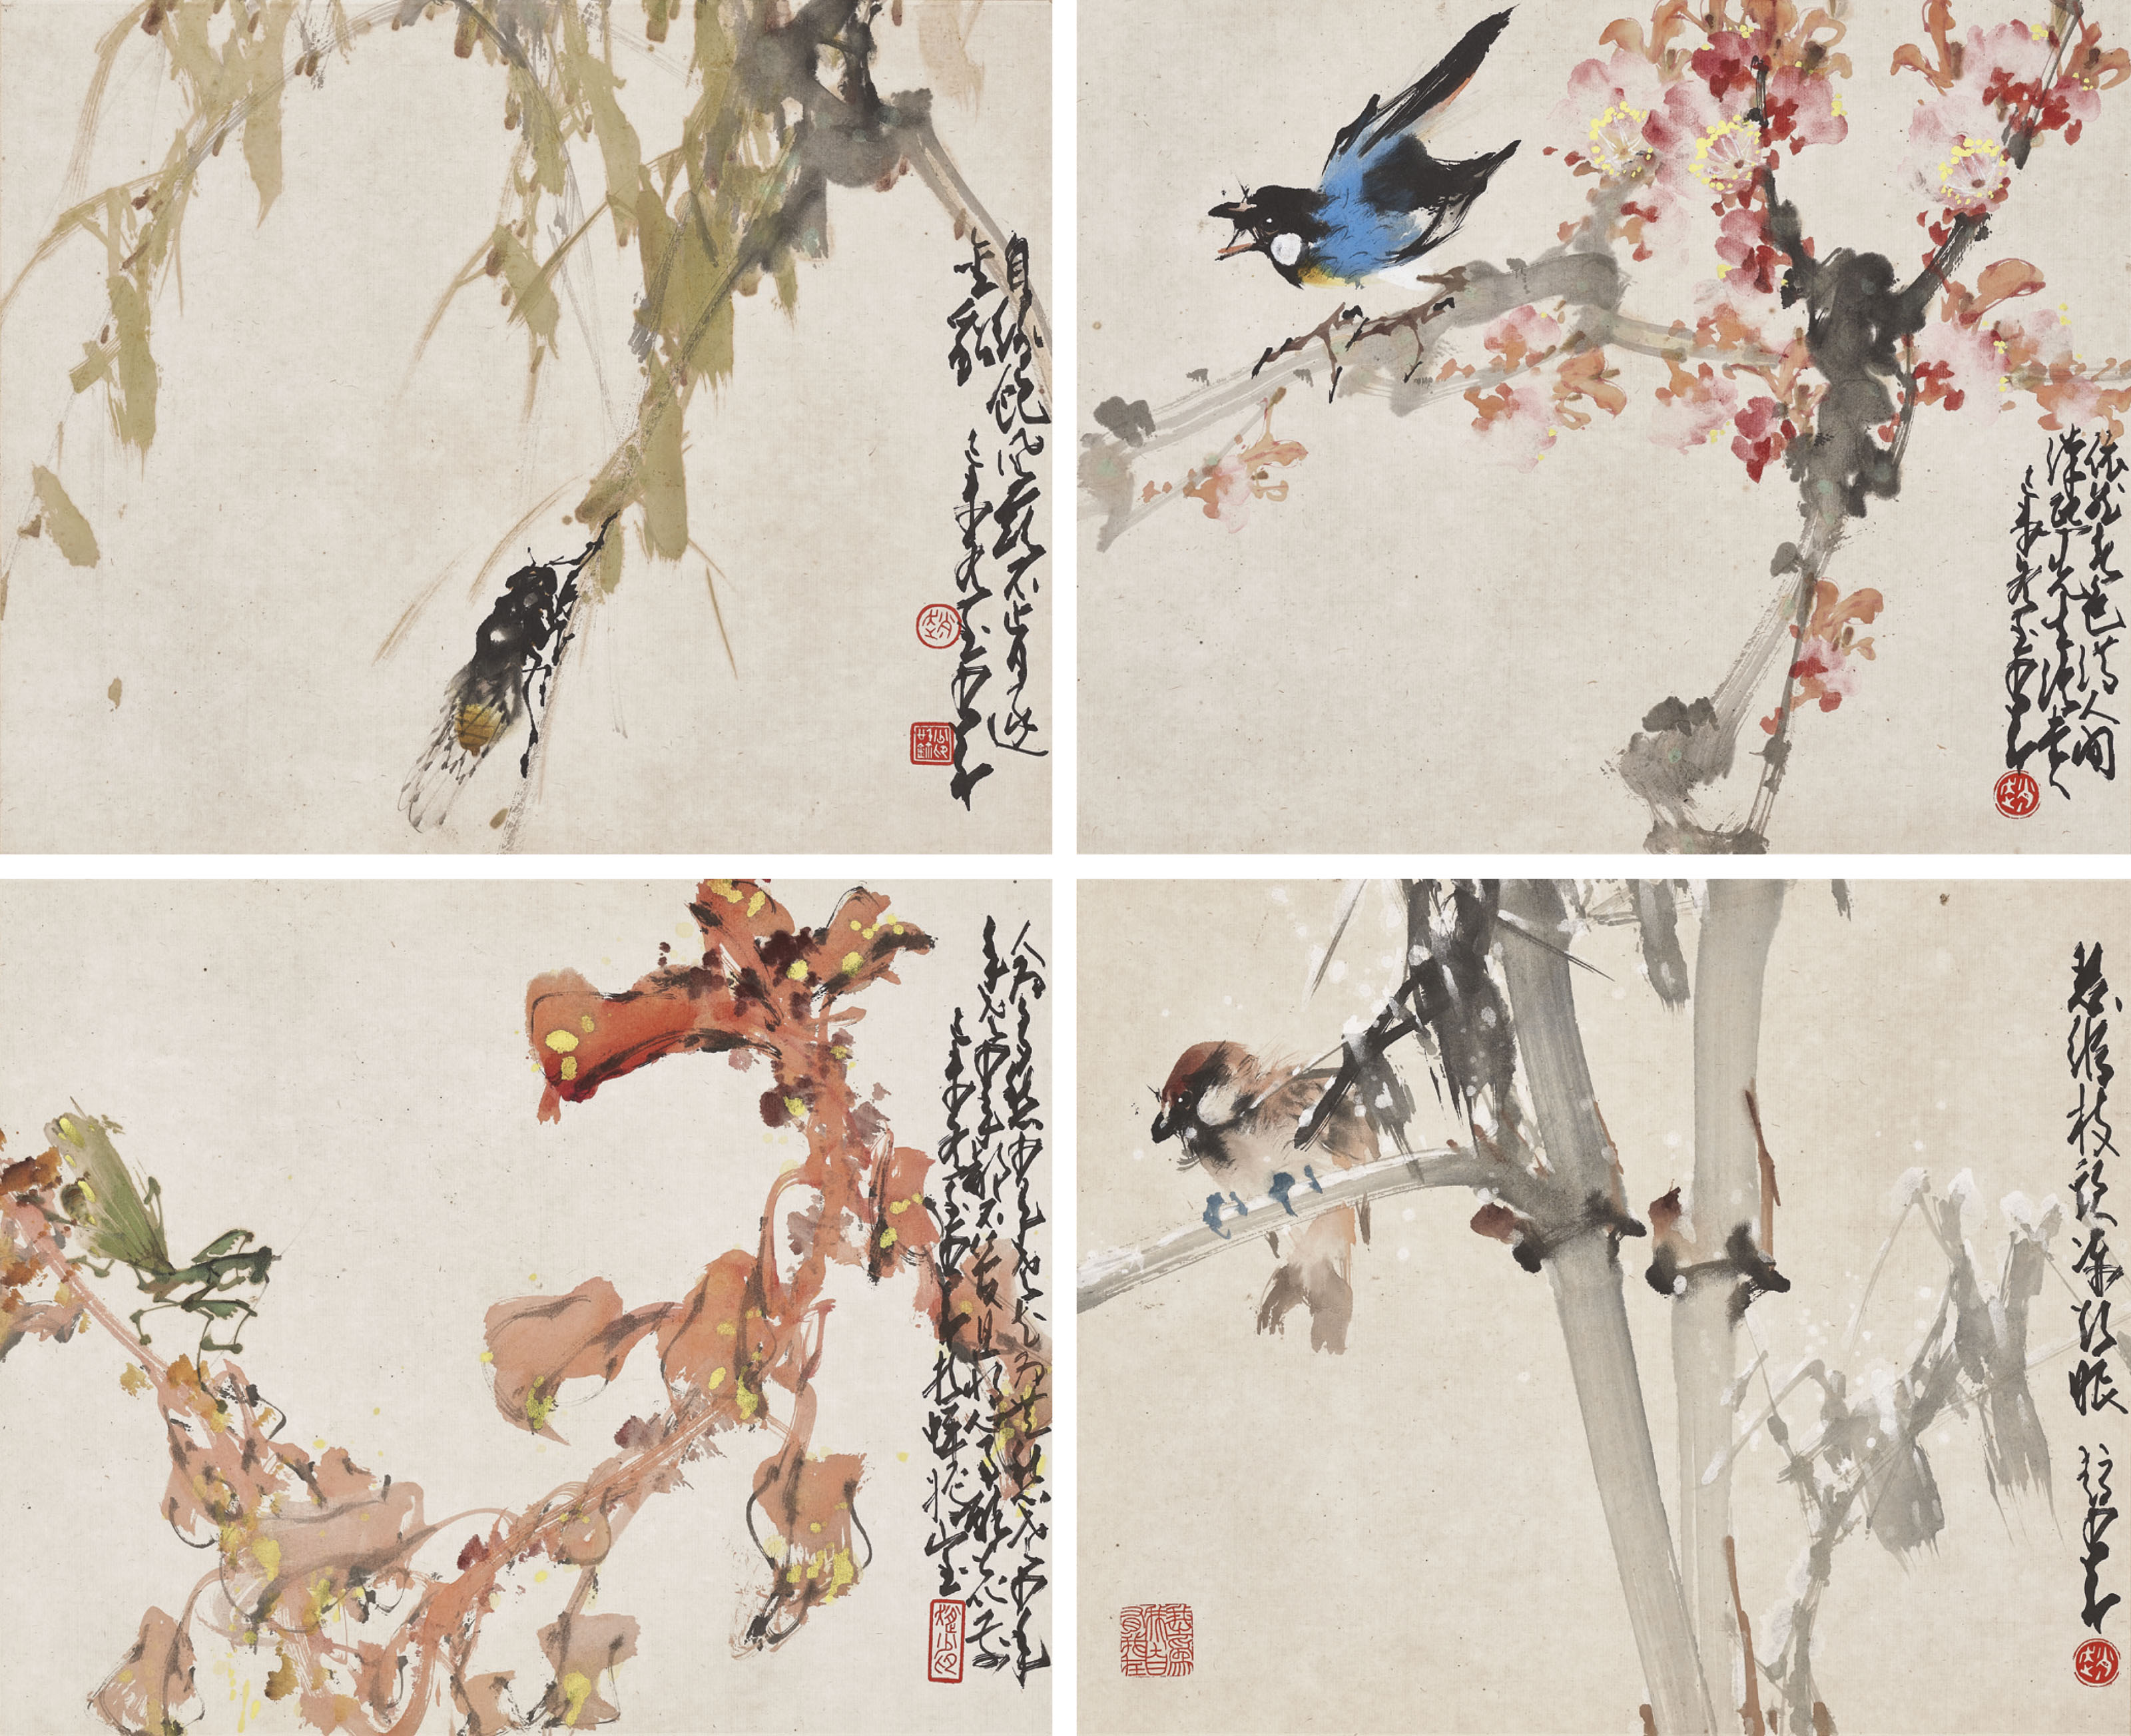 ZHAO SHAO'ANG (1905-1998) | Nature in Four Seasons | 20th